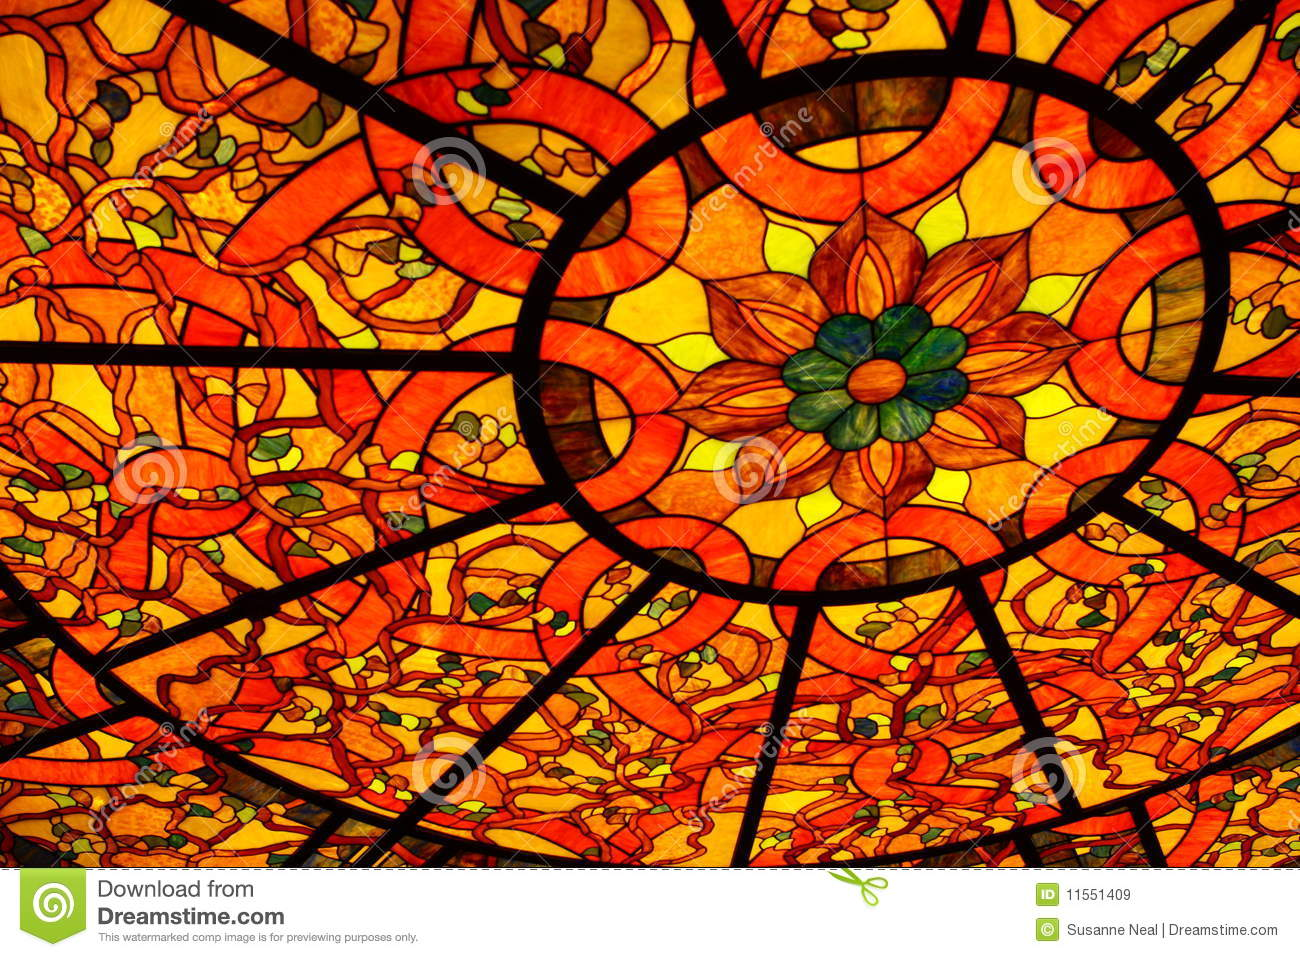 How To Craft Yellow Stained Glass